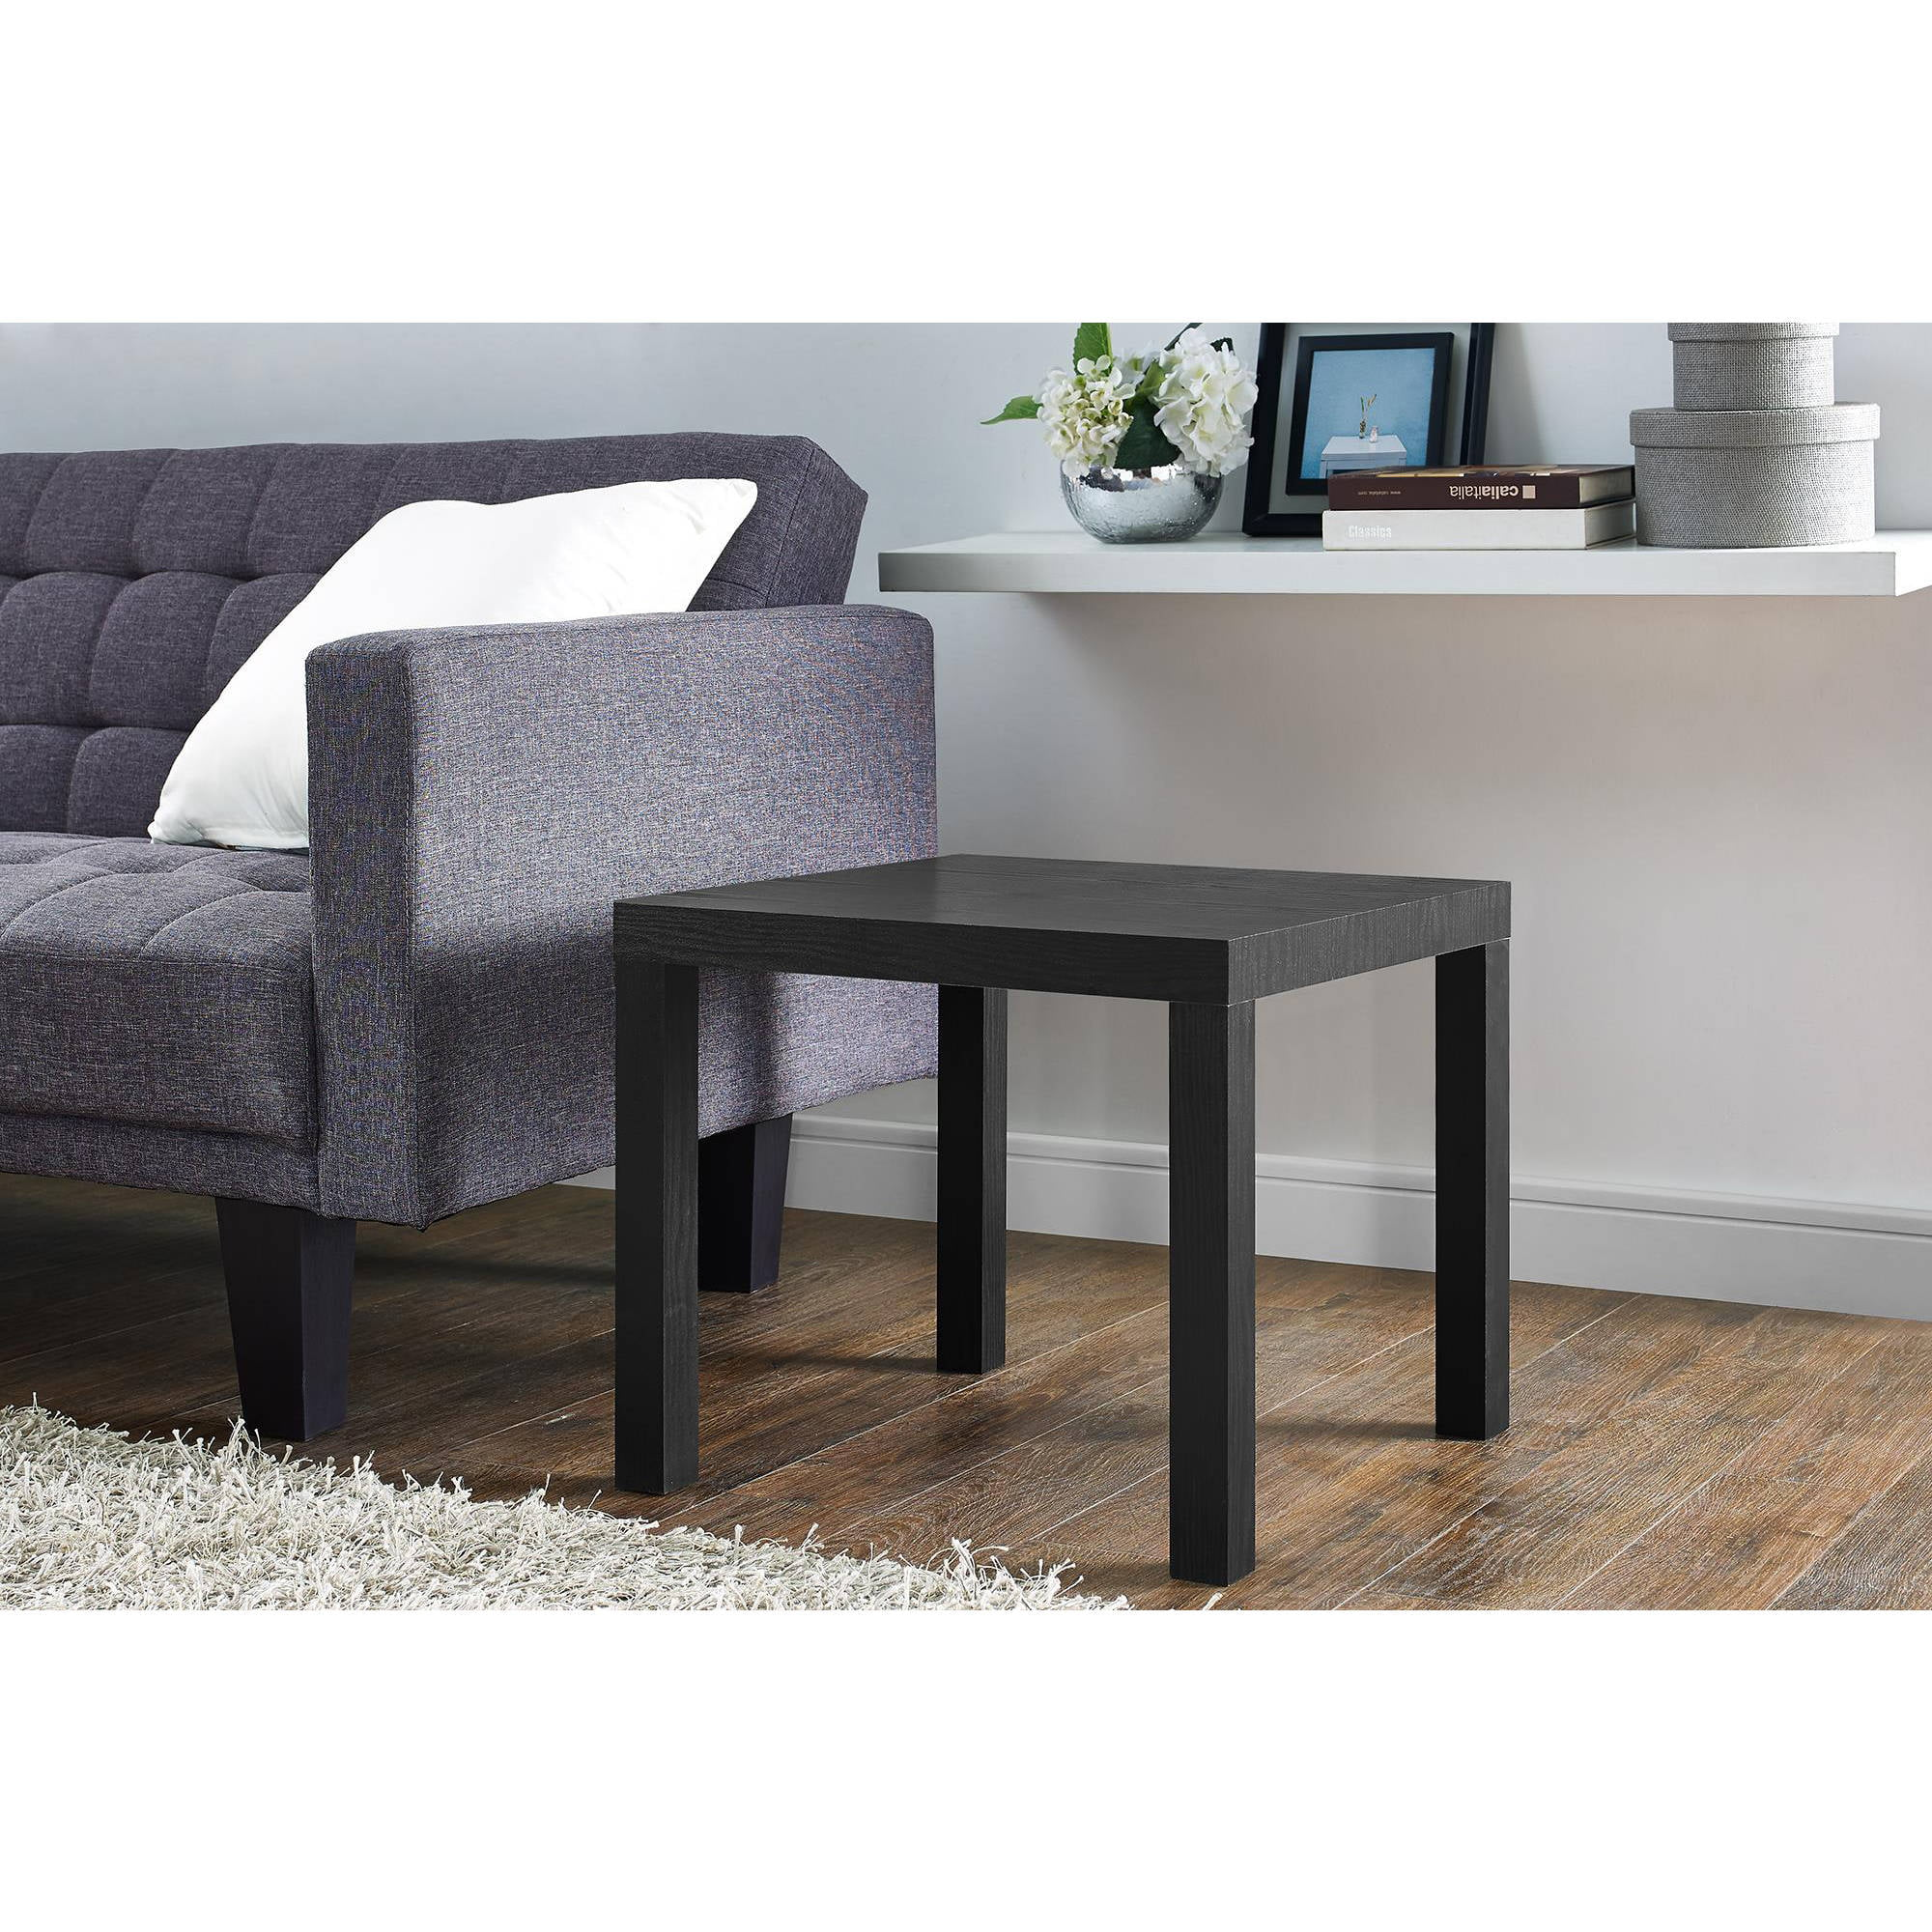 Mainstays Parsons End Table Multiple ColorsWalmartcom